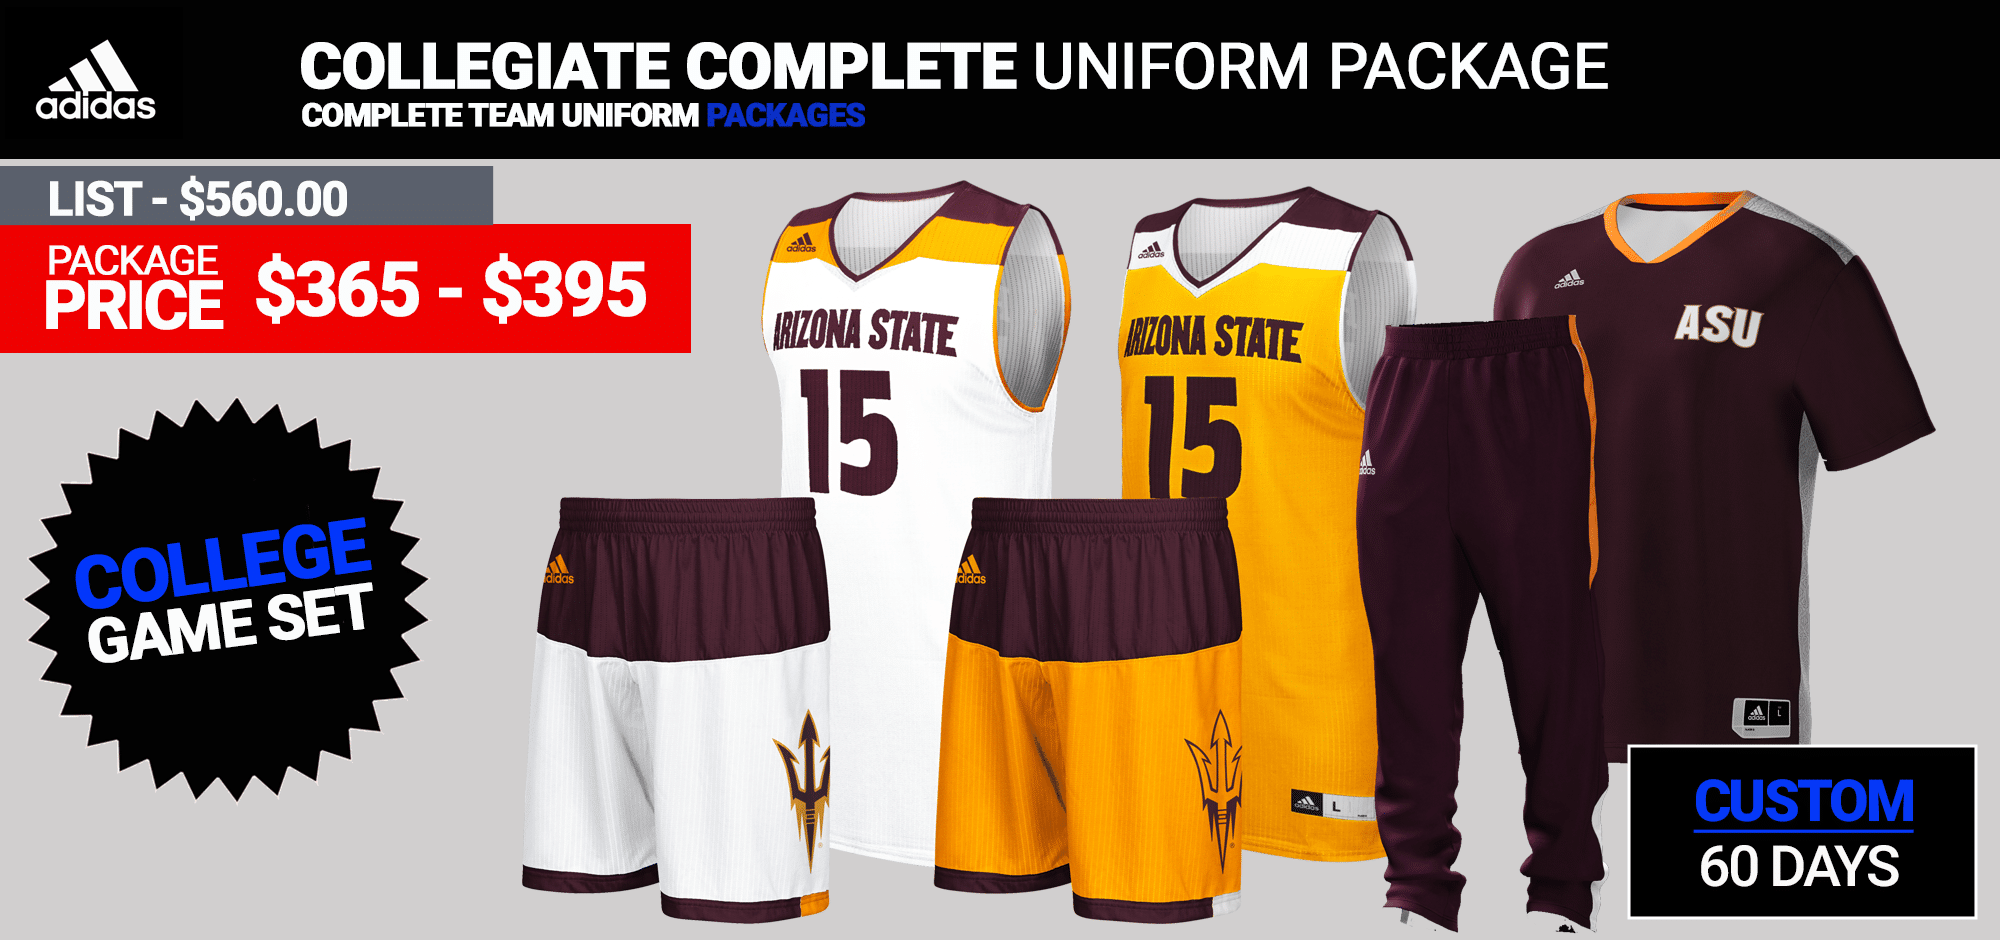 17869e0477e4 Adidas Custom Uniforms · Custom Complete Team Package (60 Days) Click for  PDF